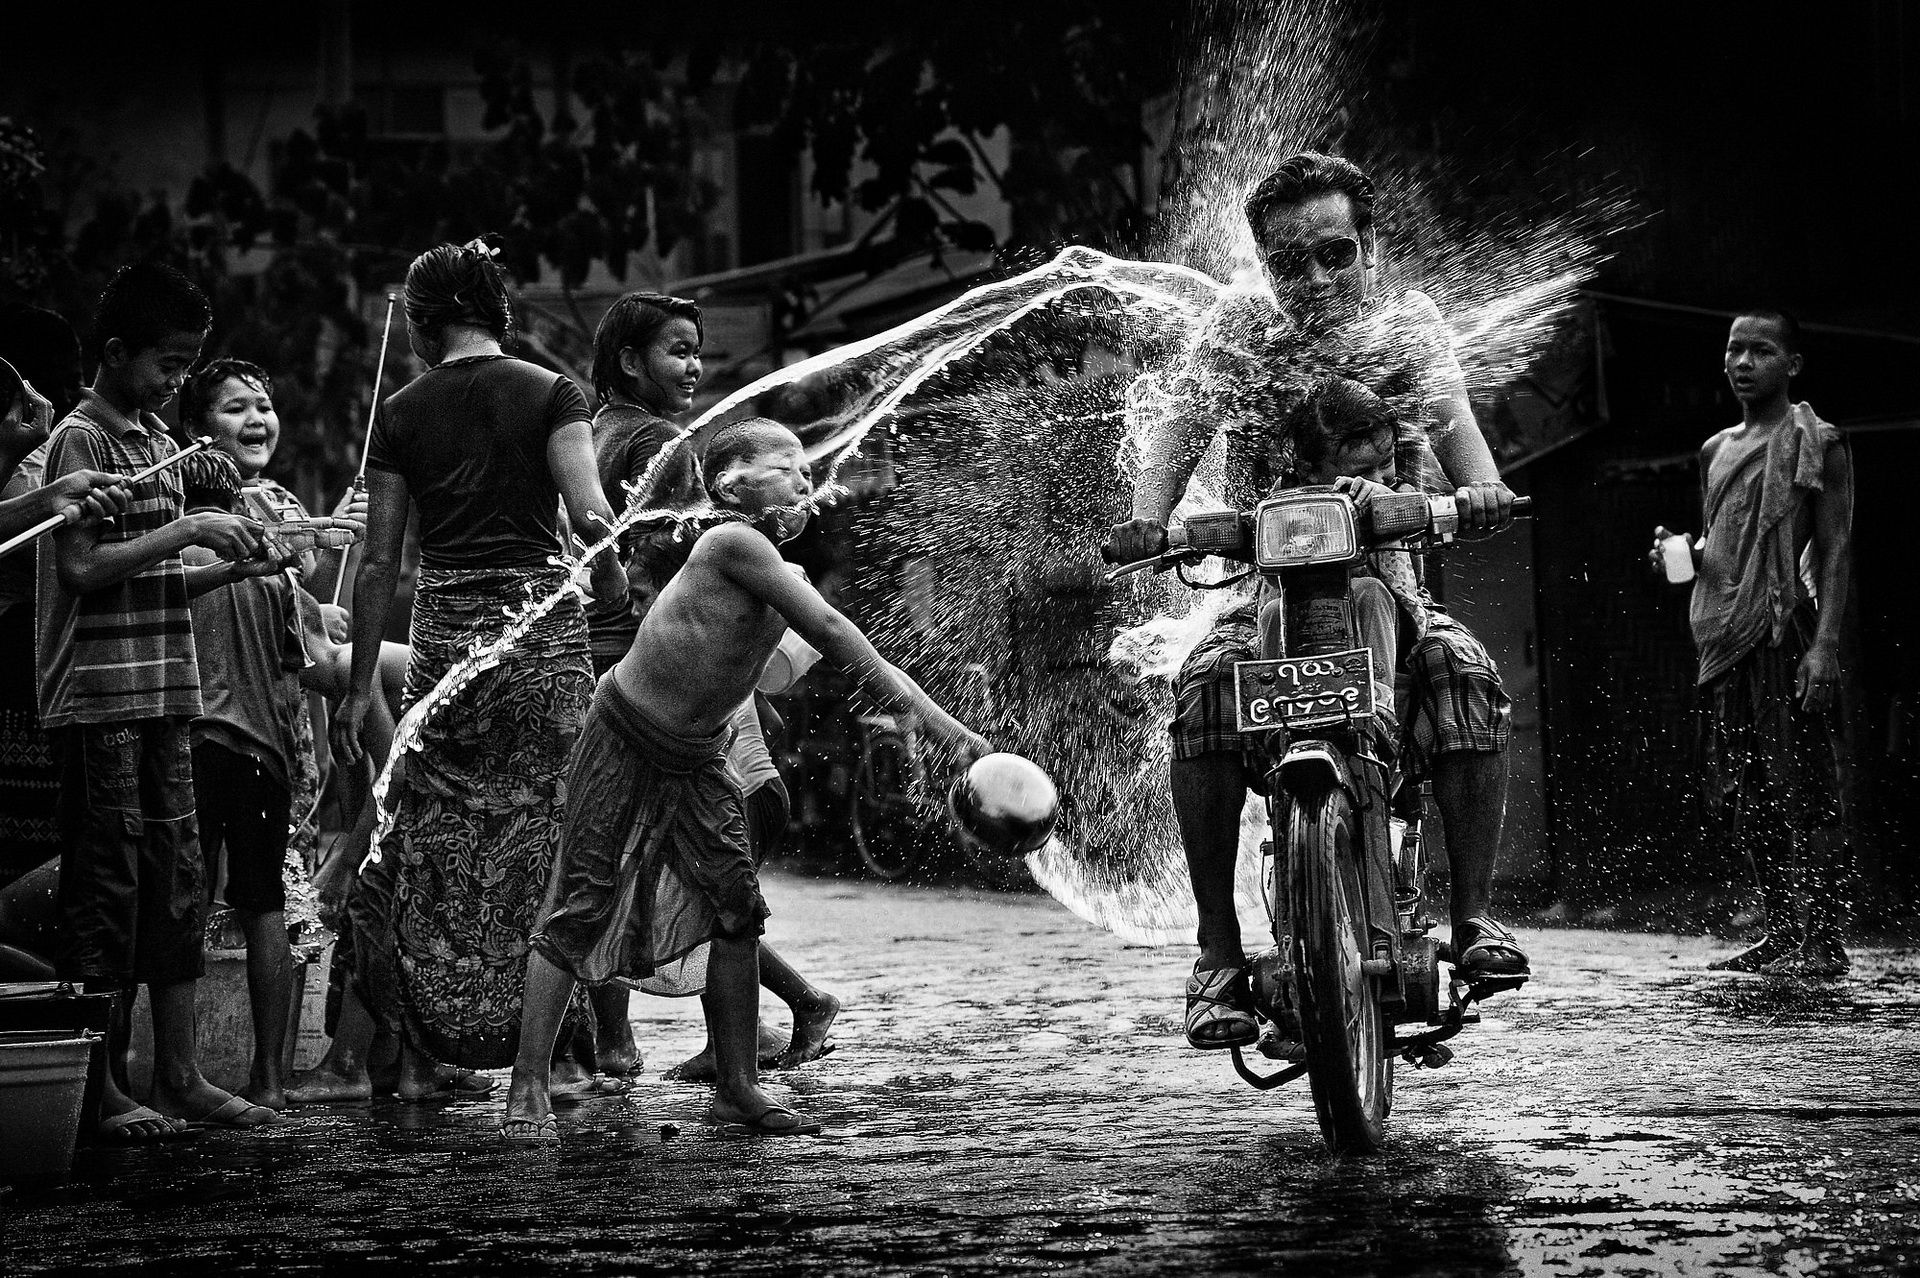 Thingyan water festival